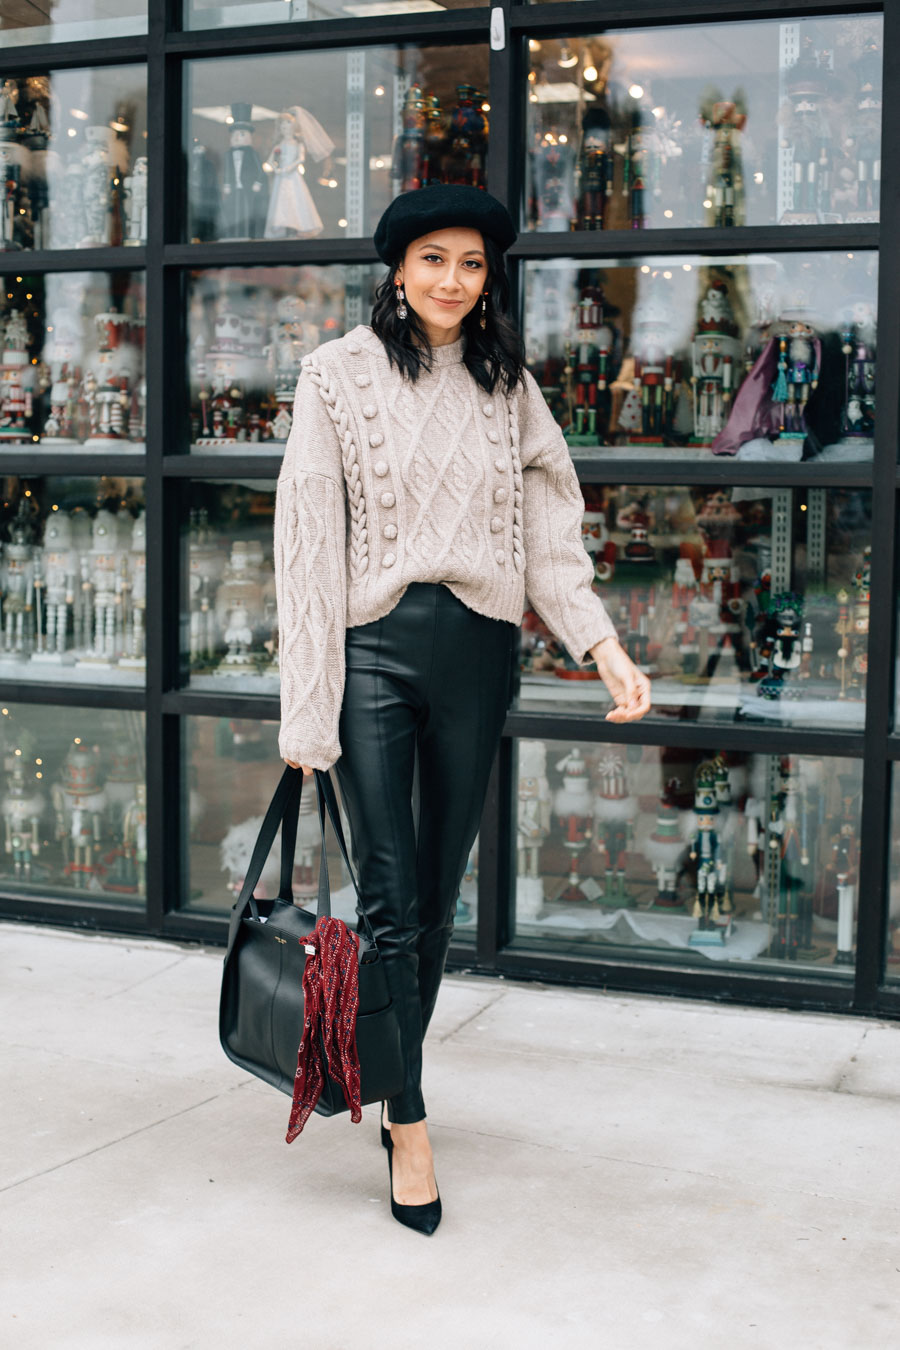 Fashion blogger Lilly Beltran in a casual holiday party look with leather leggings and cable knit sweater